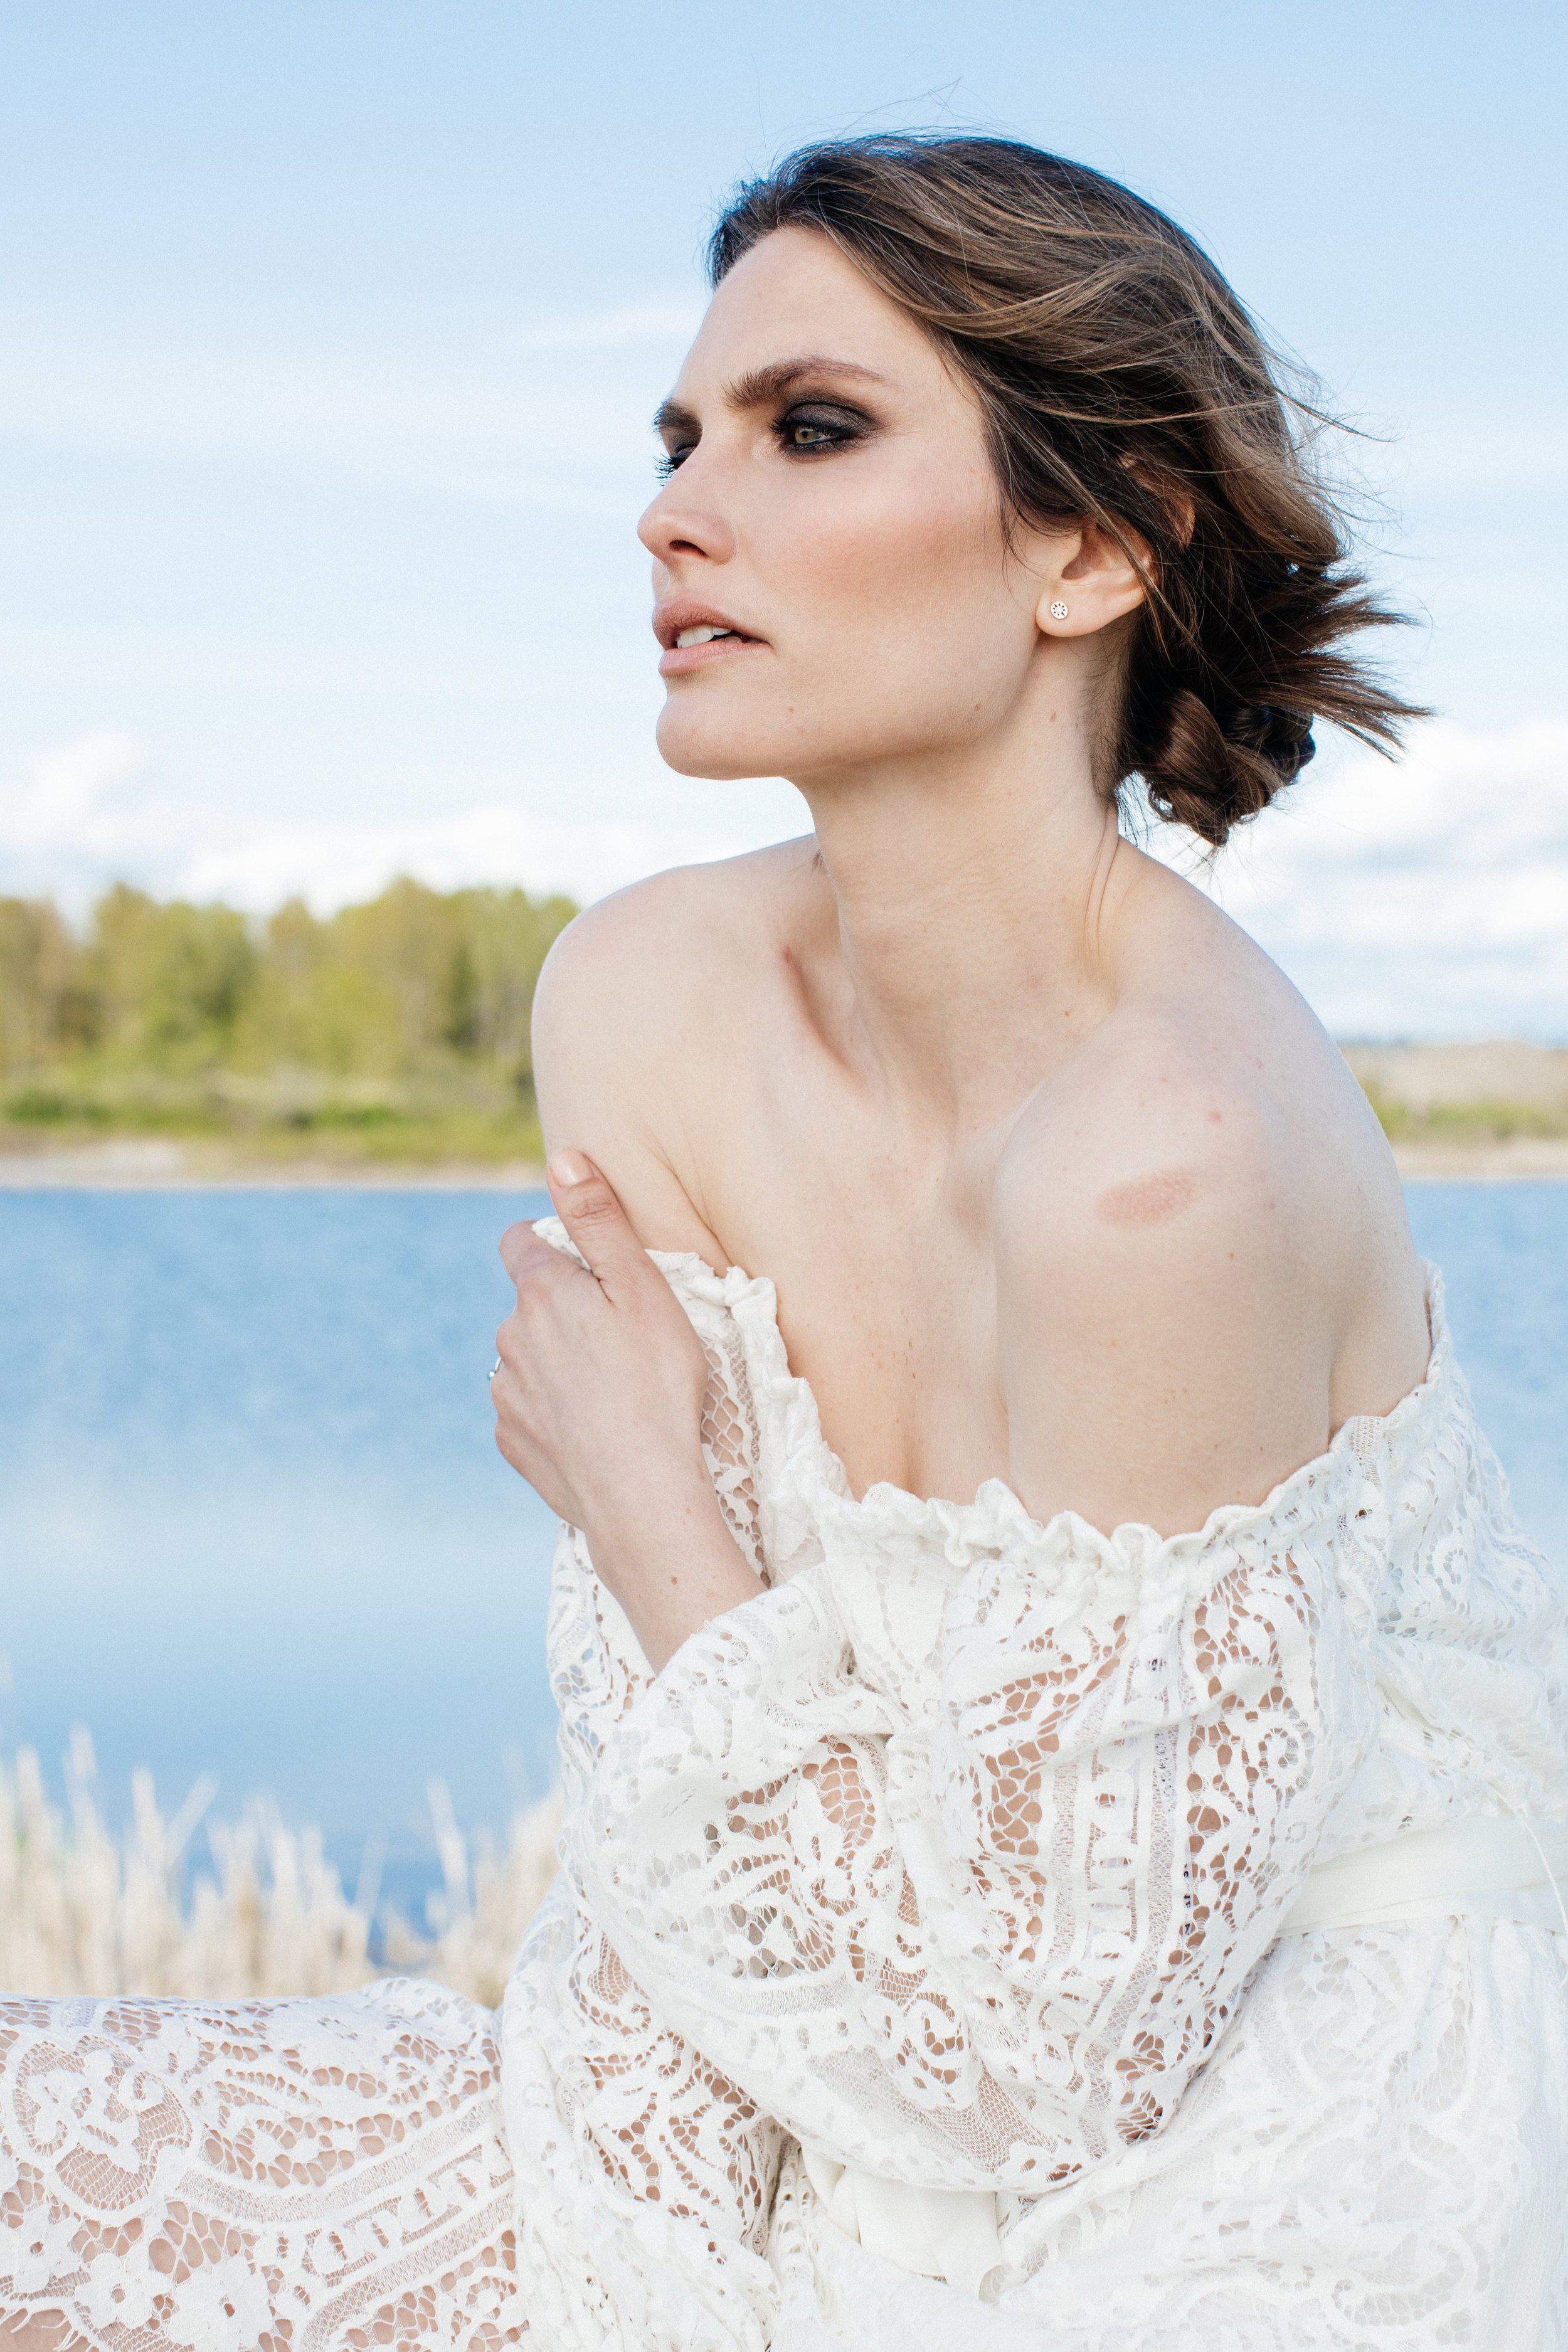 Model Kristy McQuade wearing a white lace dress on a editorial fashion photoshoot.